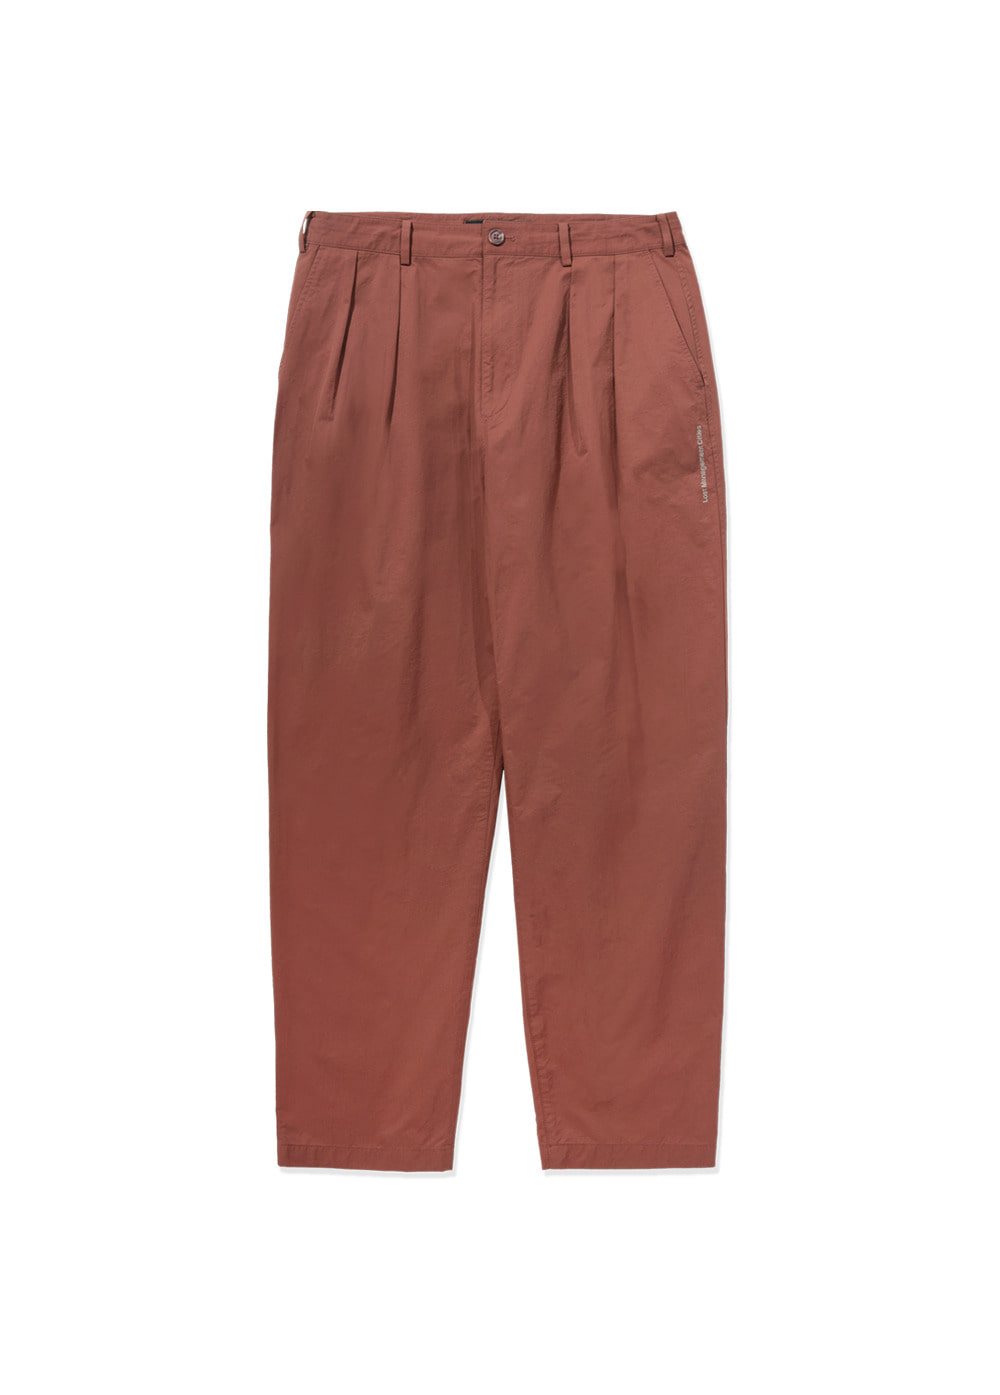 LMC DOUBLE PLEATED EASY TROUSER red brown